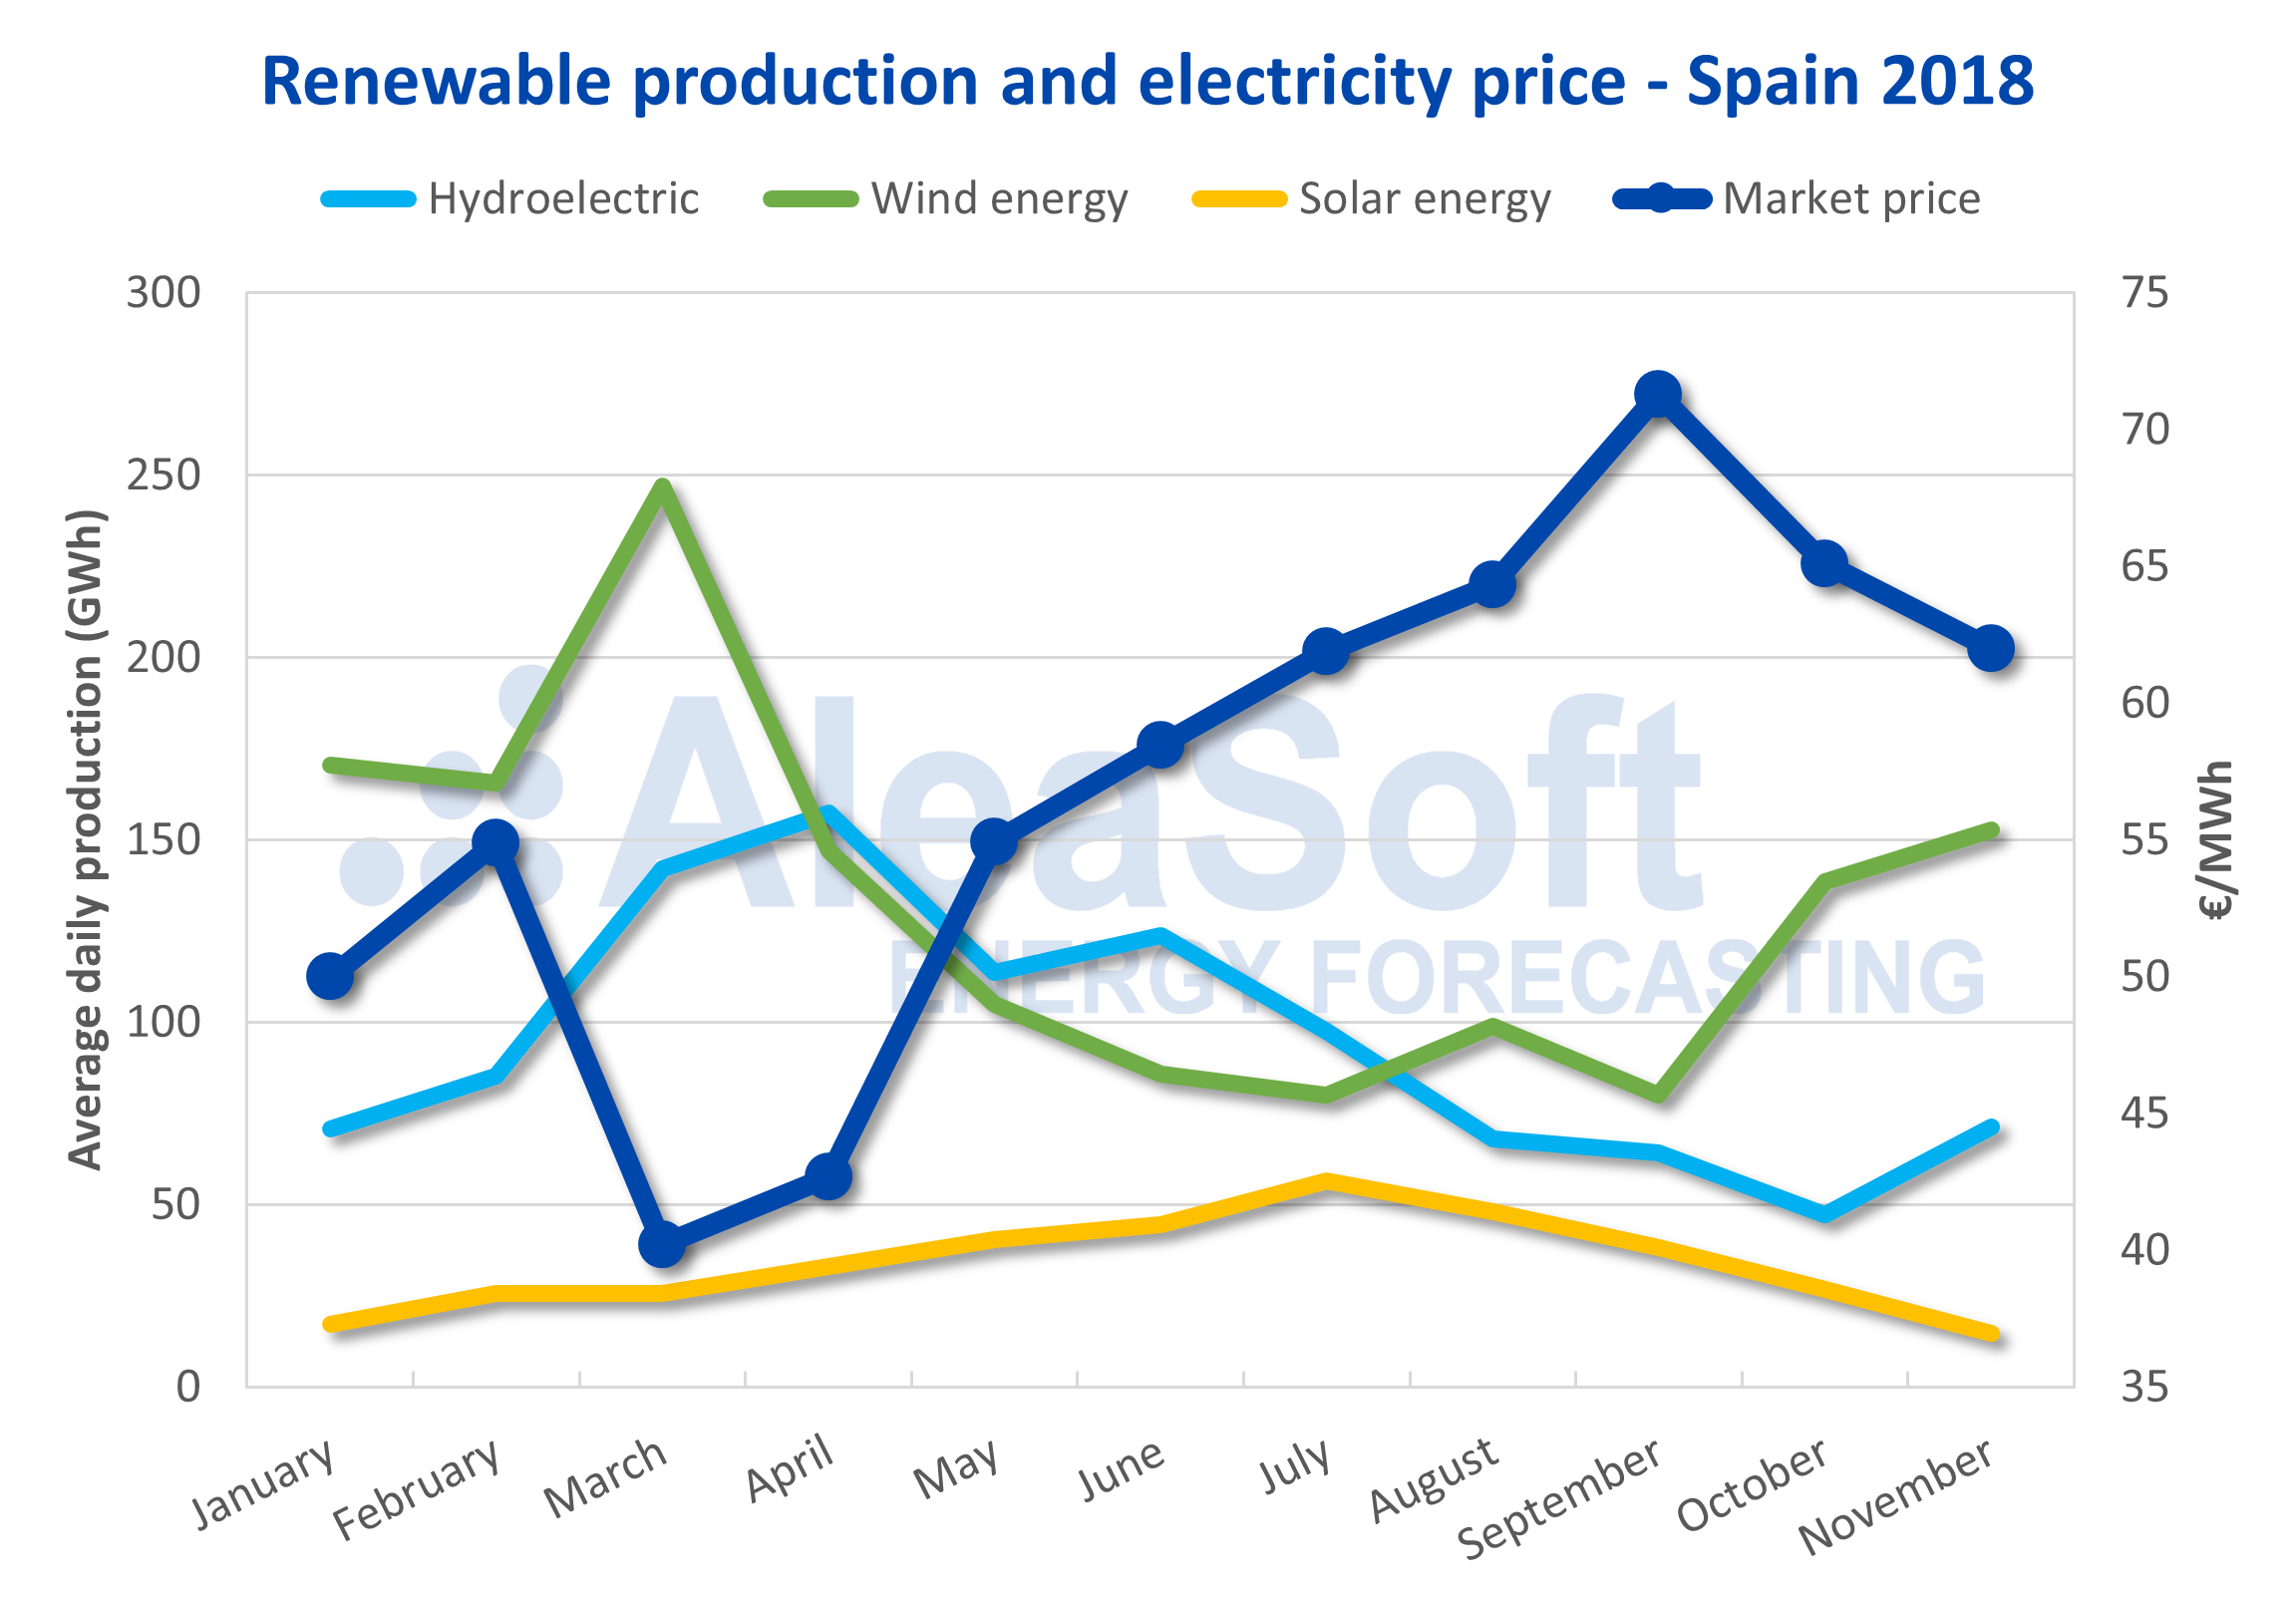 AleaSoft - Renewable production price electricity Spain 2018